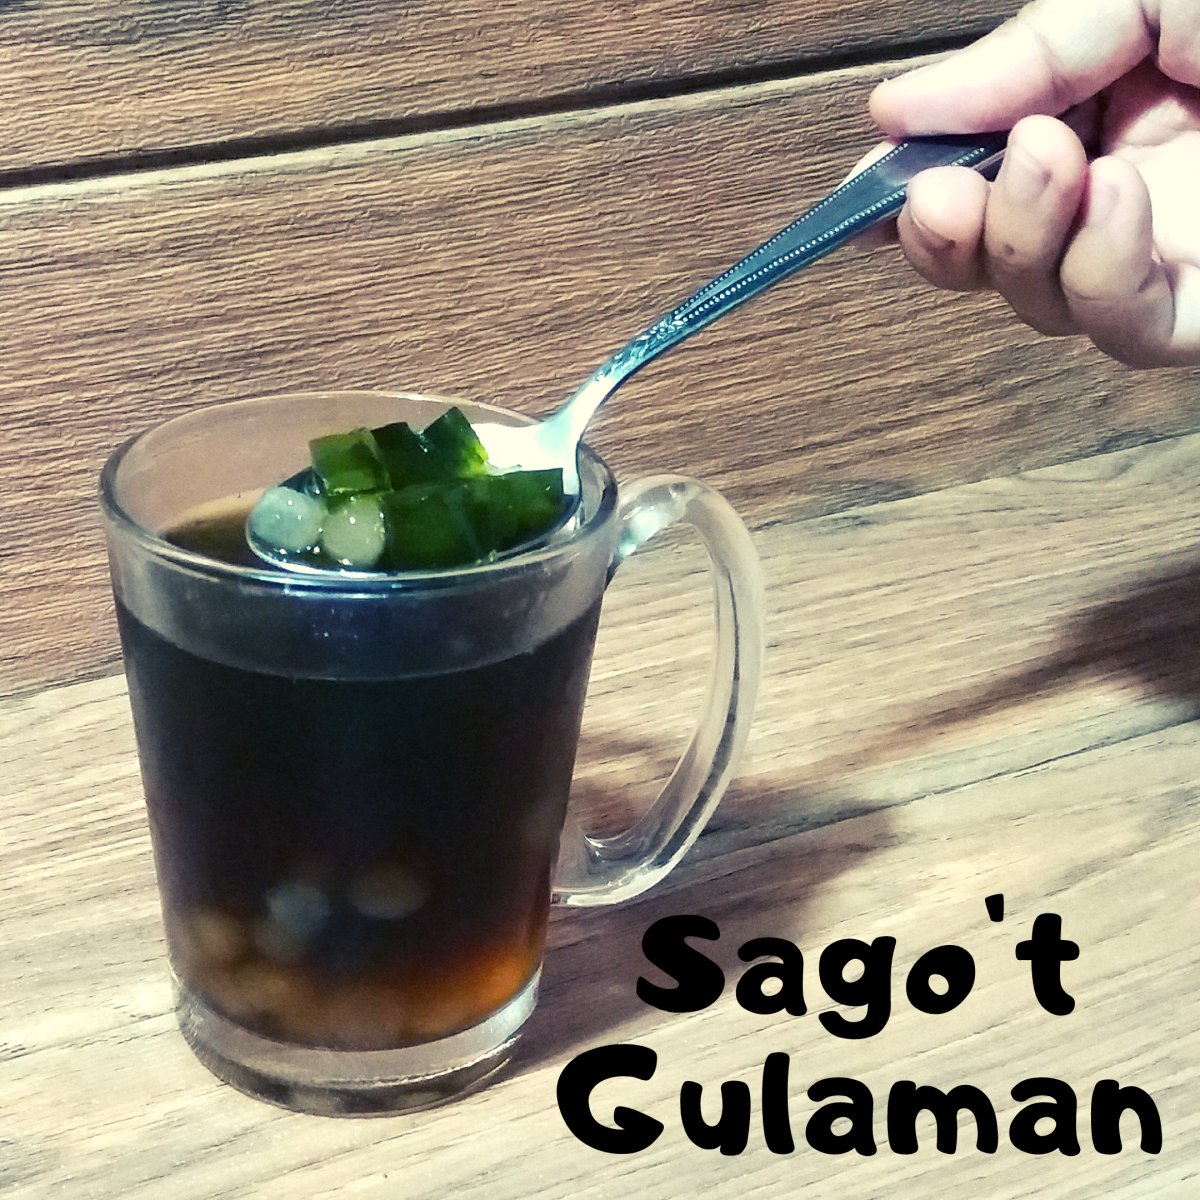 How to Make Sago't Gulaman: A Filipino-Inspired Drink